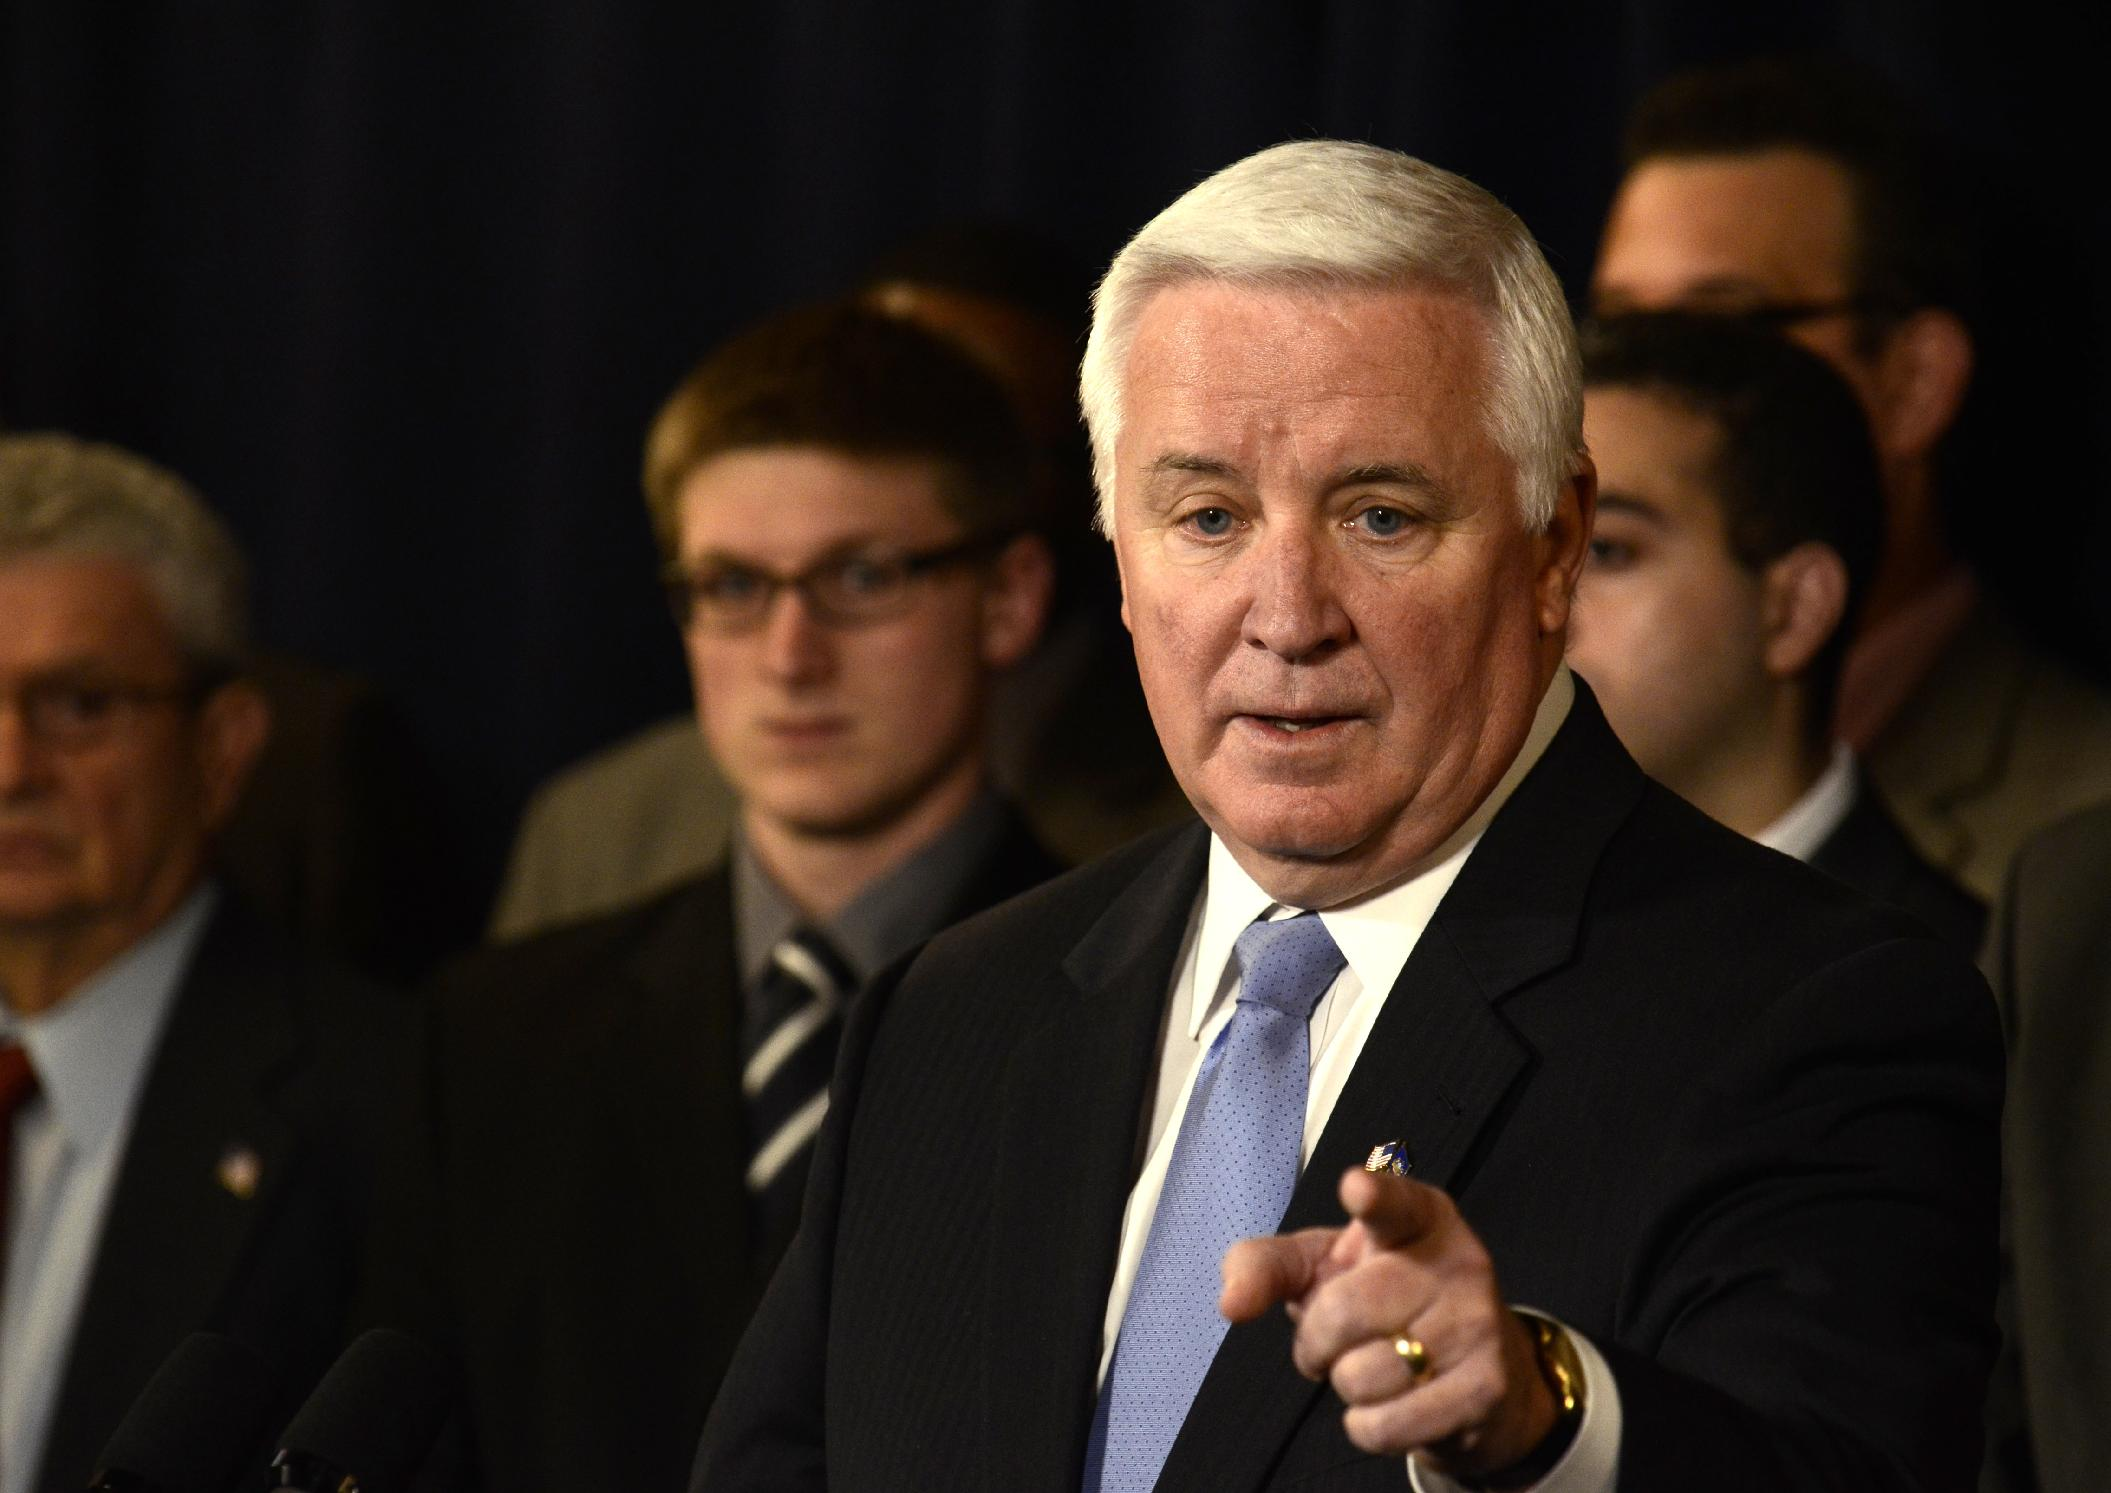 Pennsylvania Gov. Tom Corbett gestures while speaking at a news conference. (AP)